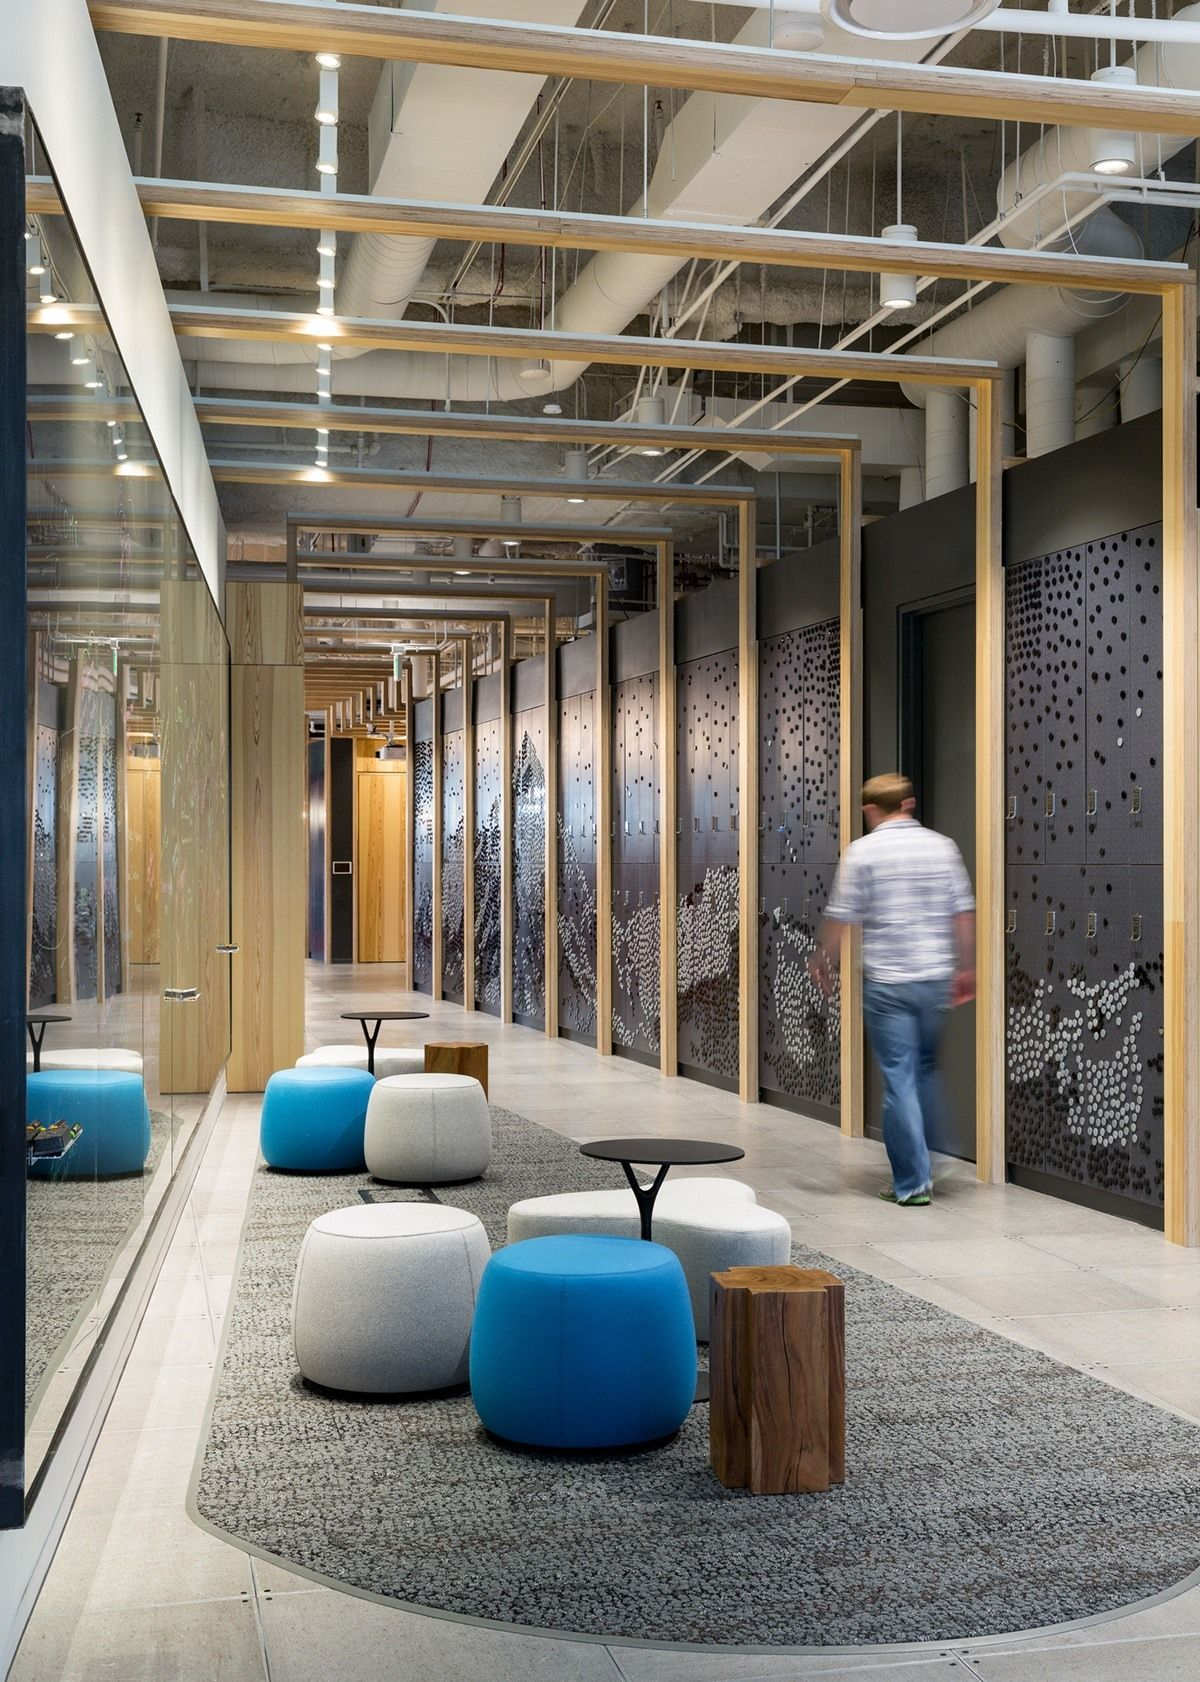 A Look Inside KPMG's Ignition Center in Denver